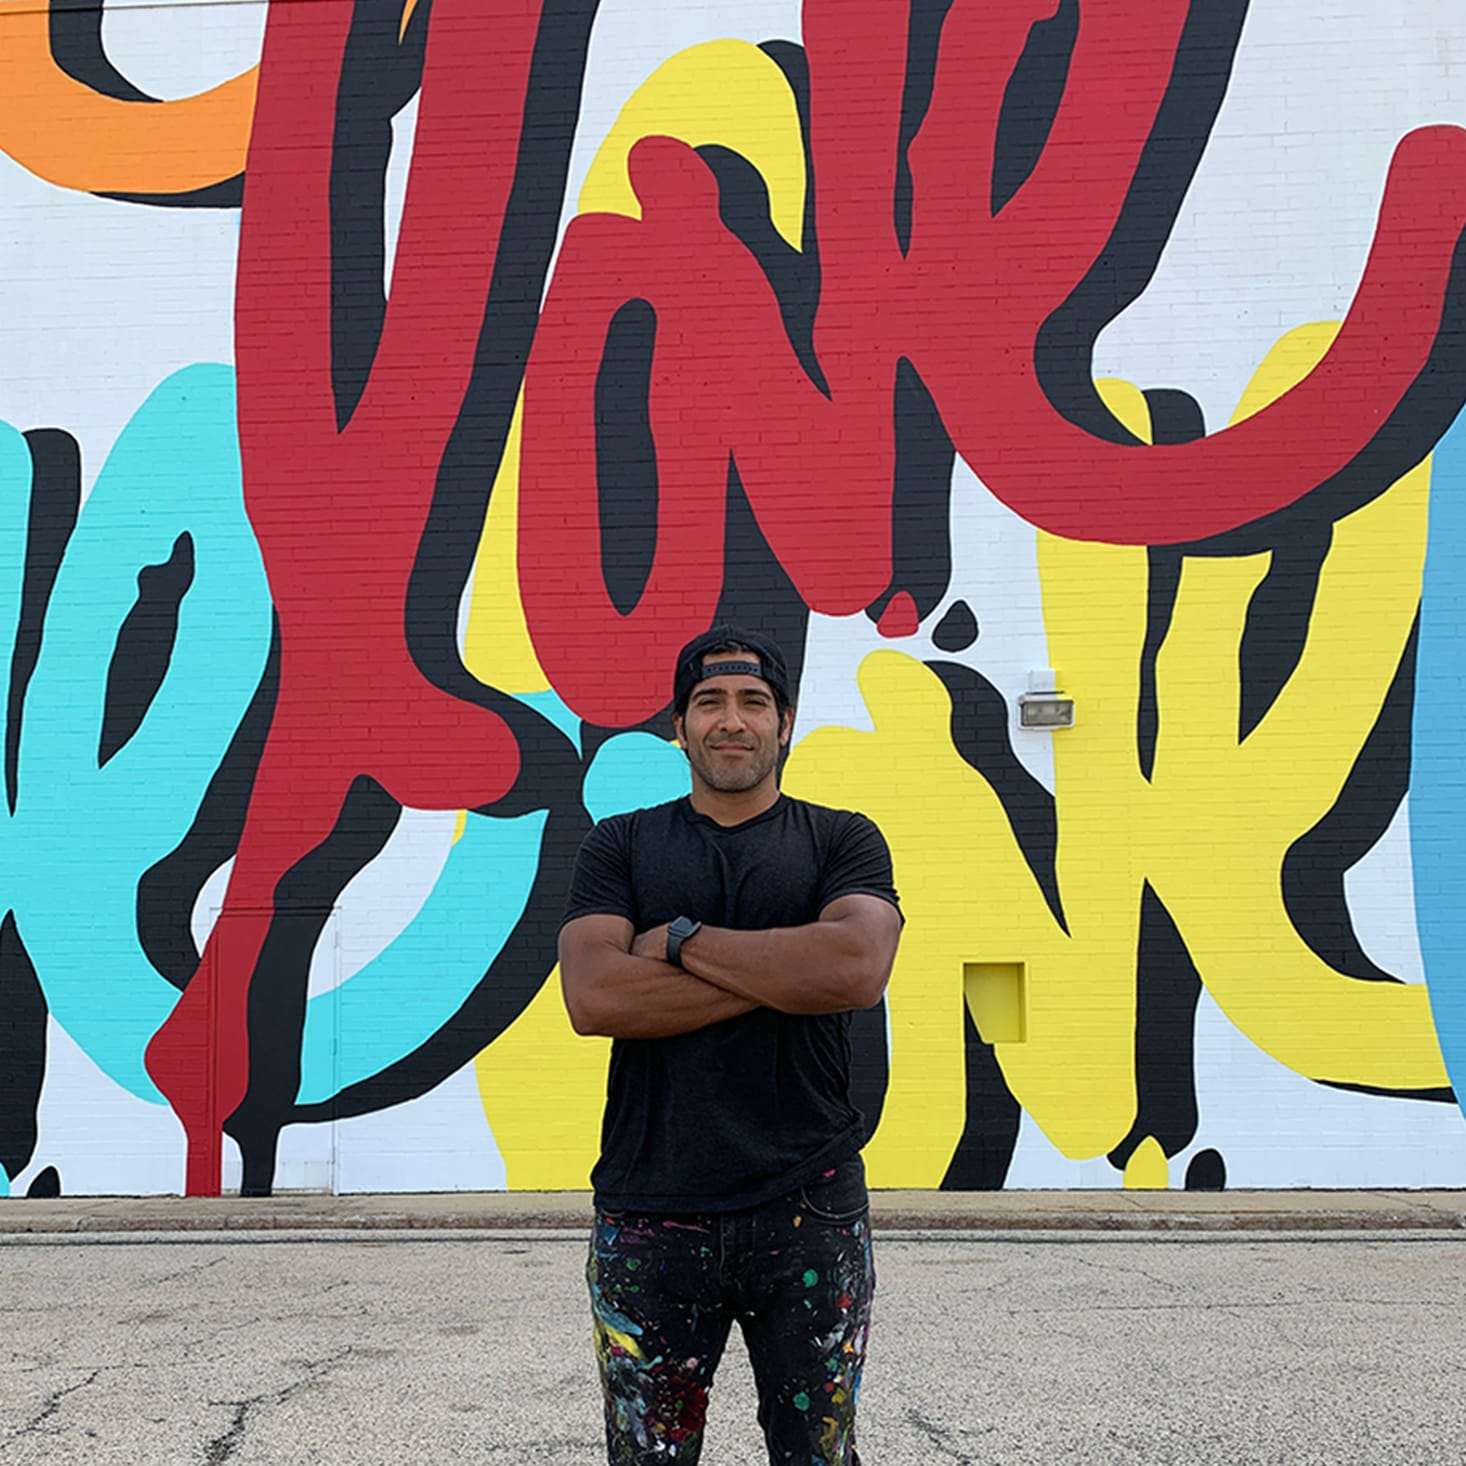 artist standing in front of painted 'love' mural on side of building